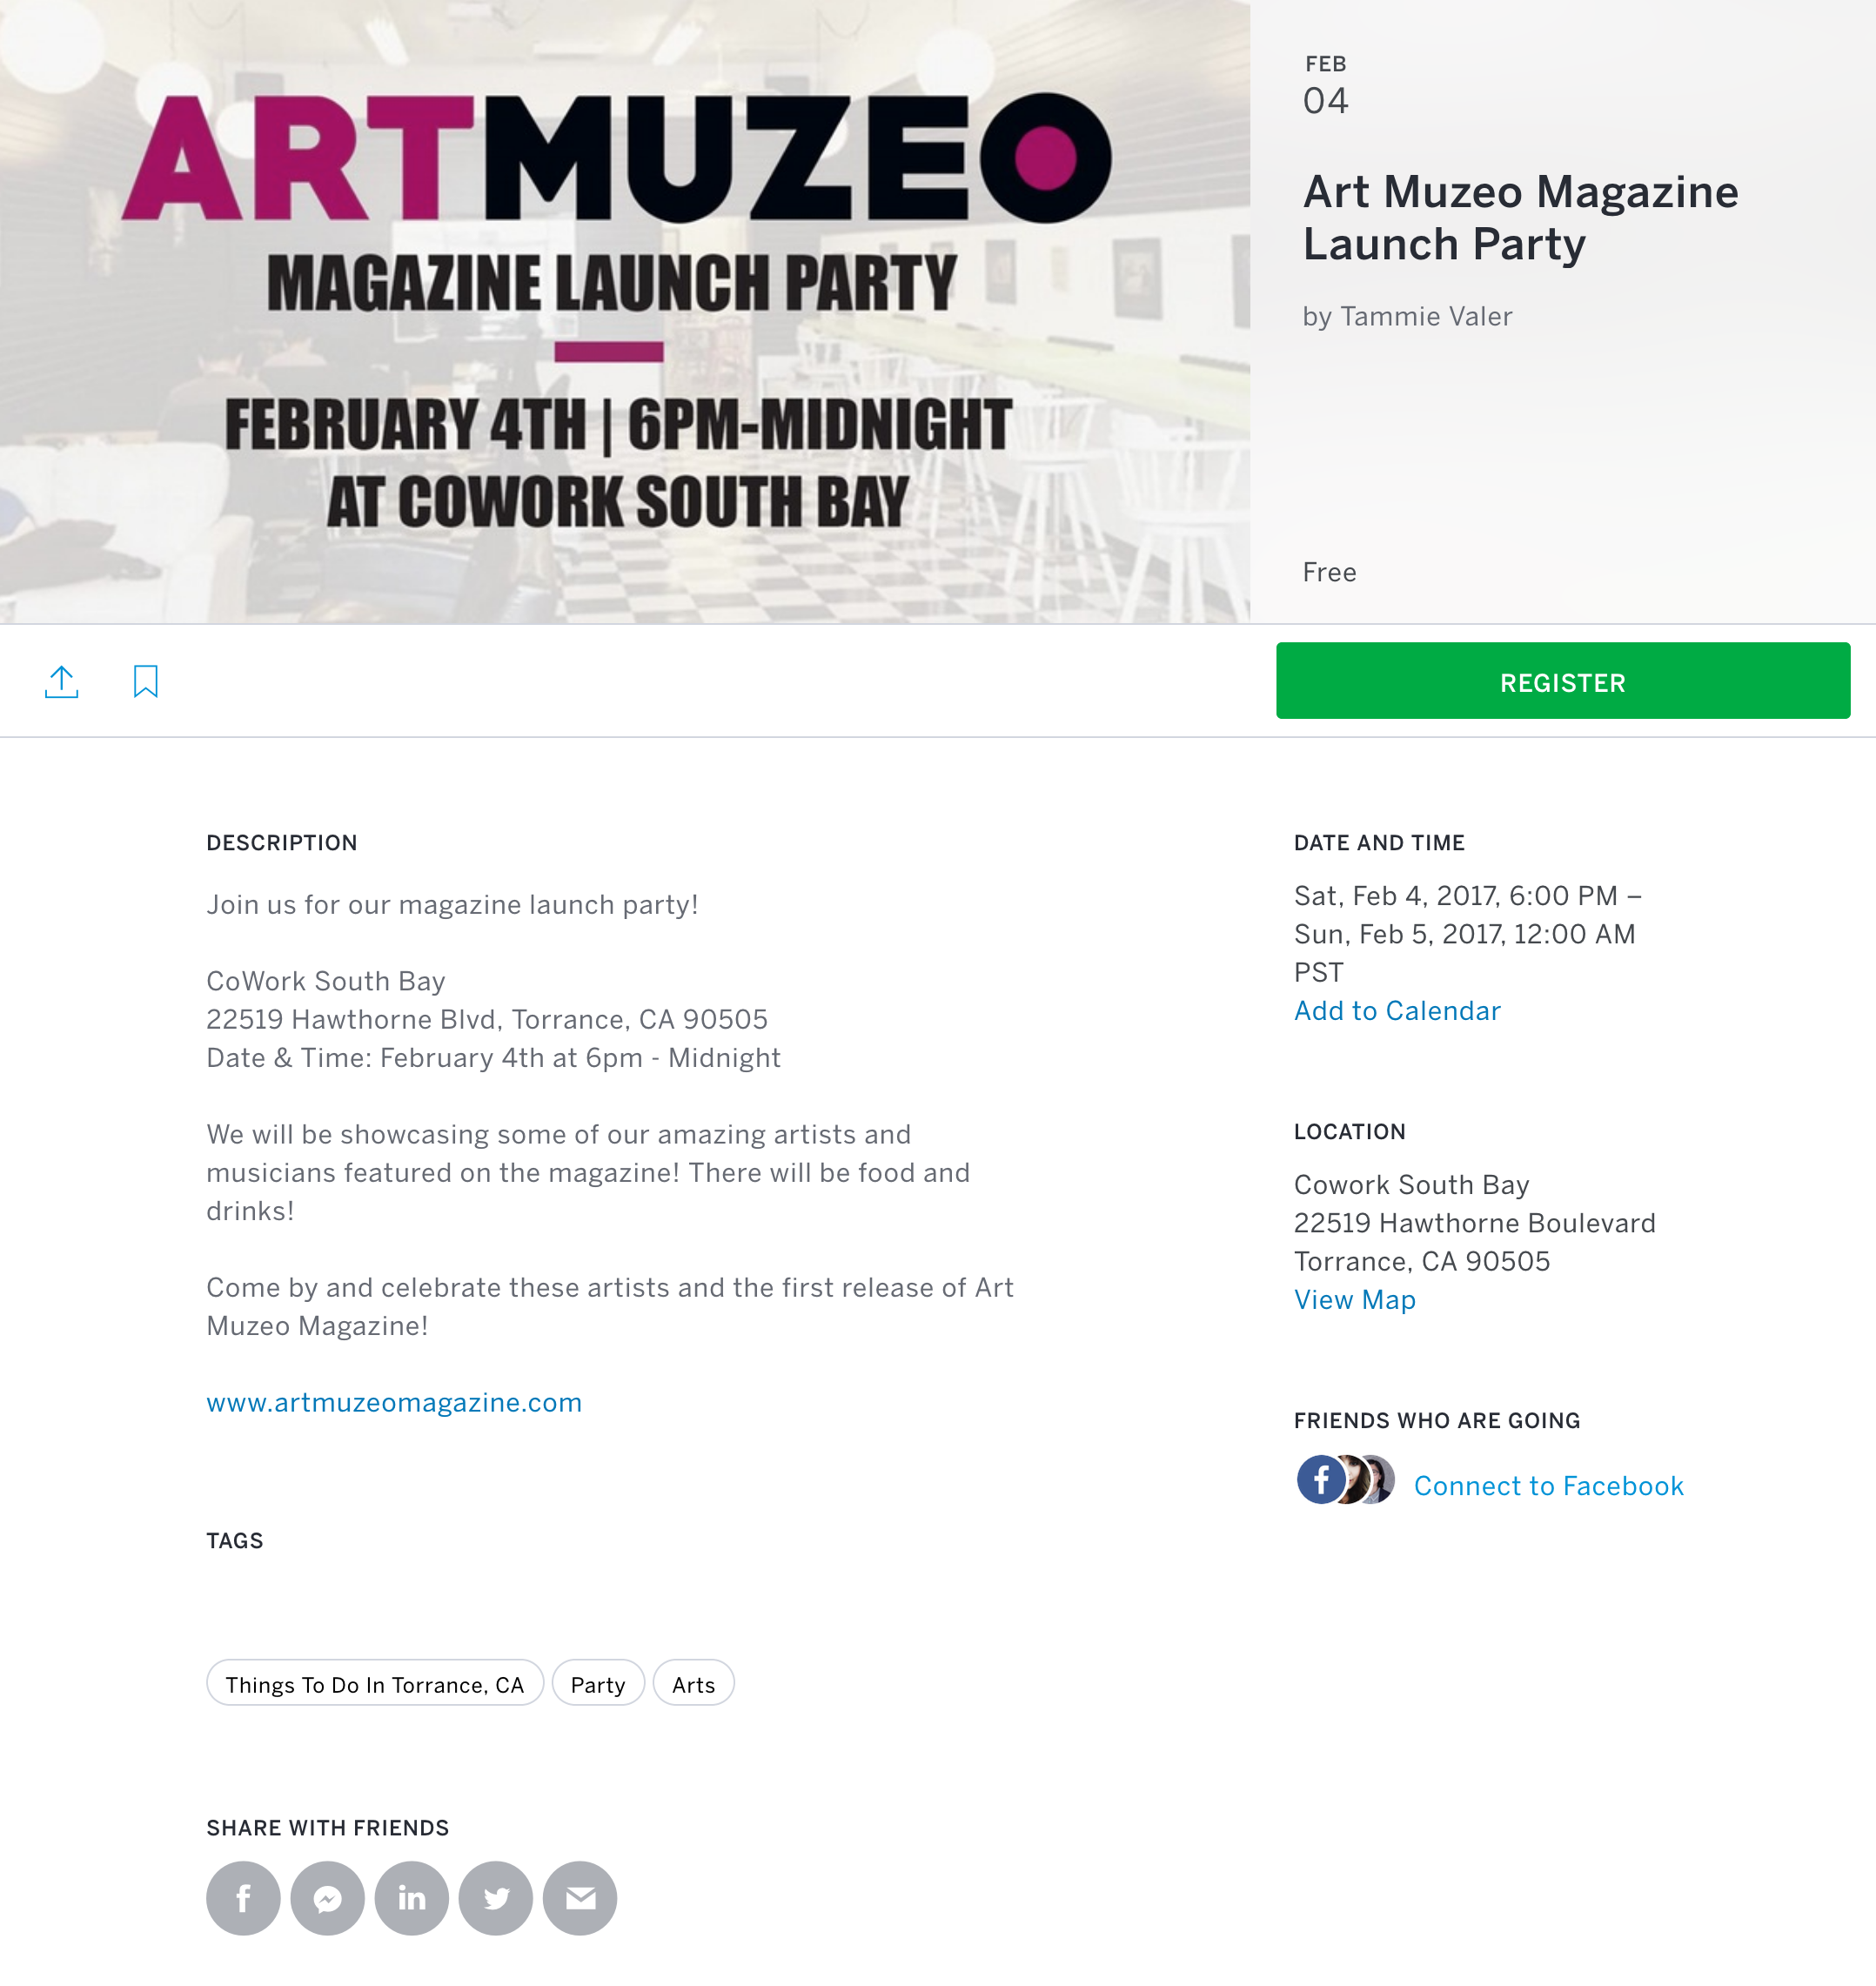 Join me and the other amazing artists of Art Muzeo. Tickets available at Eventbrite.com. The first issue of  Art Muzeo now available for download or purchase.